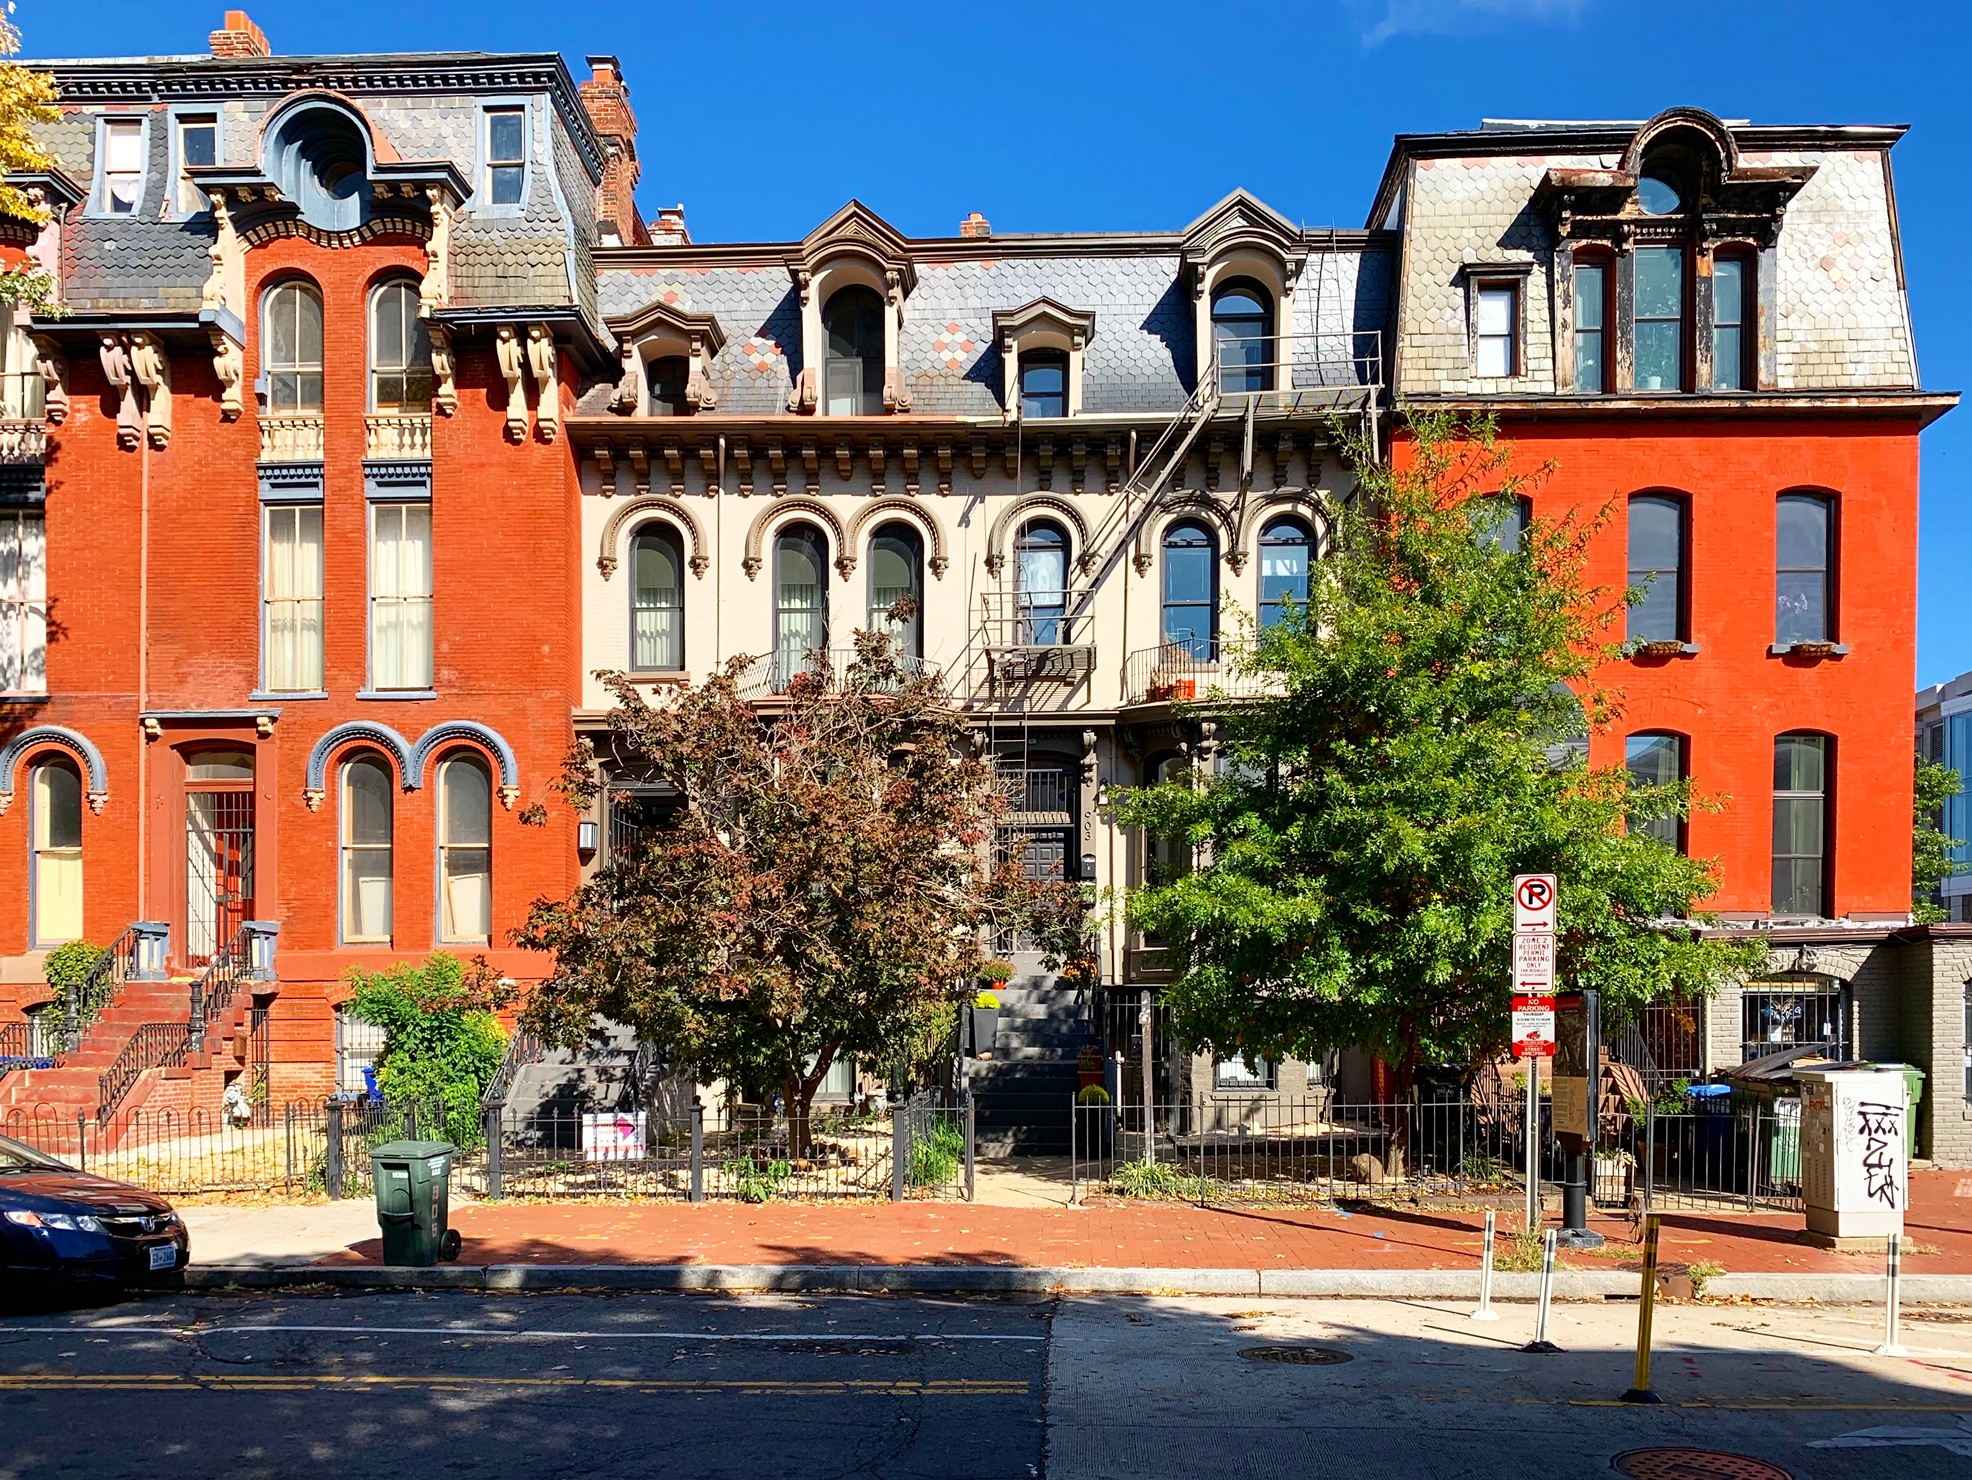 Washington, DC Historic Homes For Sale. M St in Shaw. Artyom Shmatko Luxury Real Estate Agent